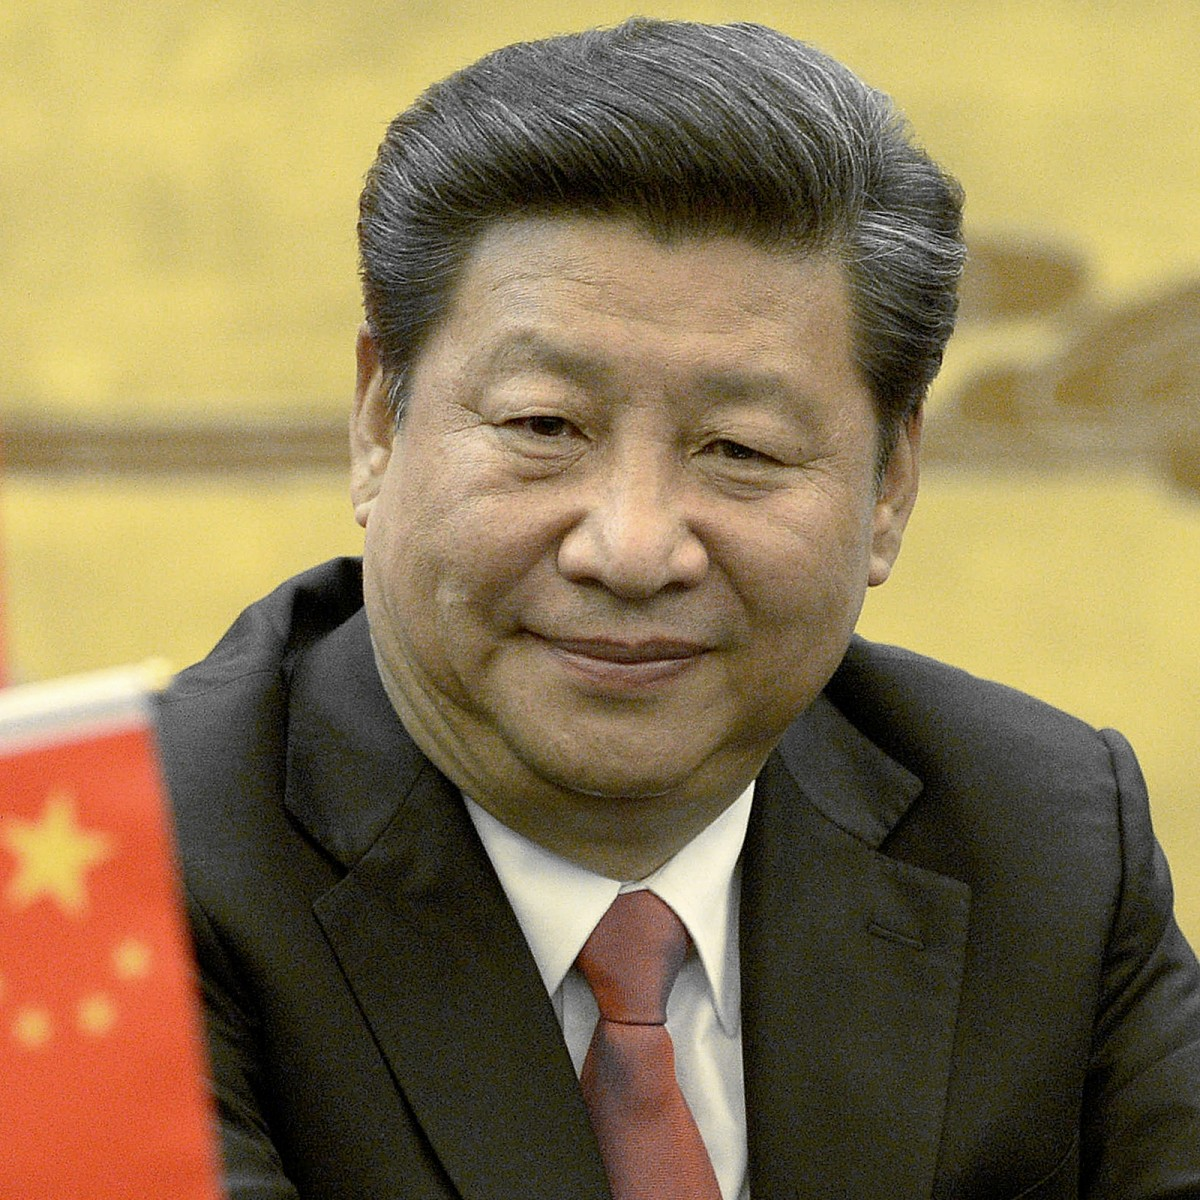 Xi Jinping photo via Getty Images